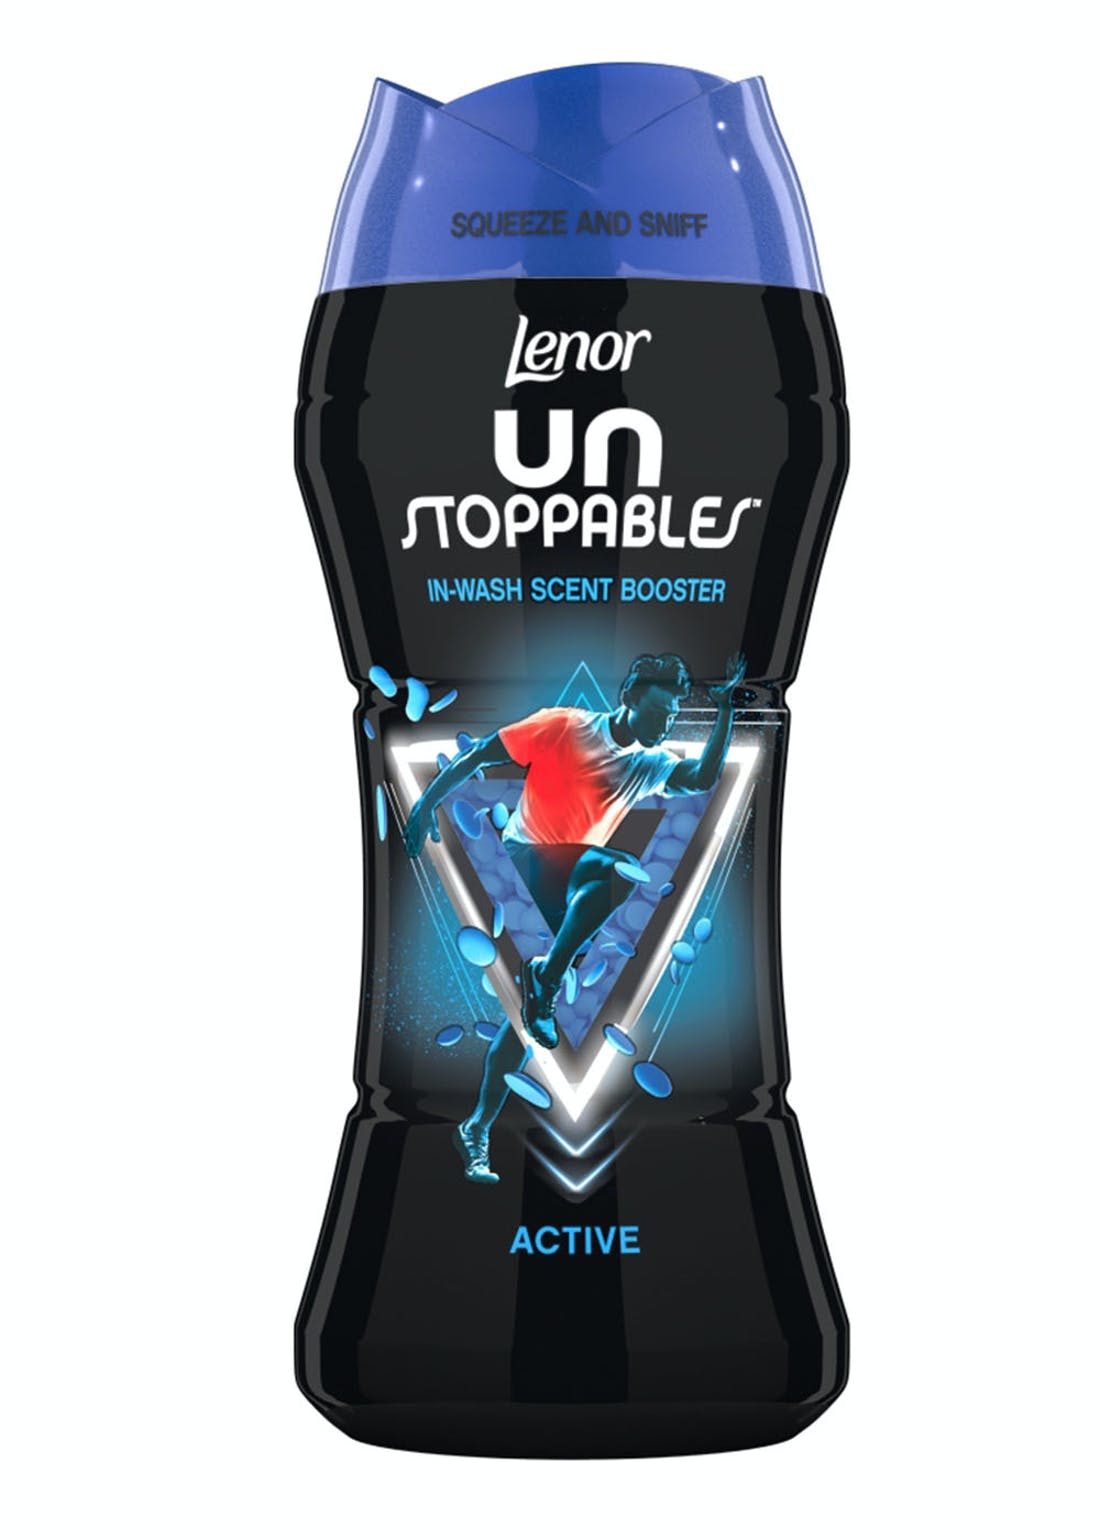 Lenor Unstoppables Active In Wash Scent Booster